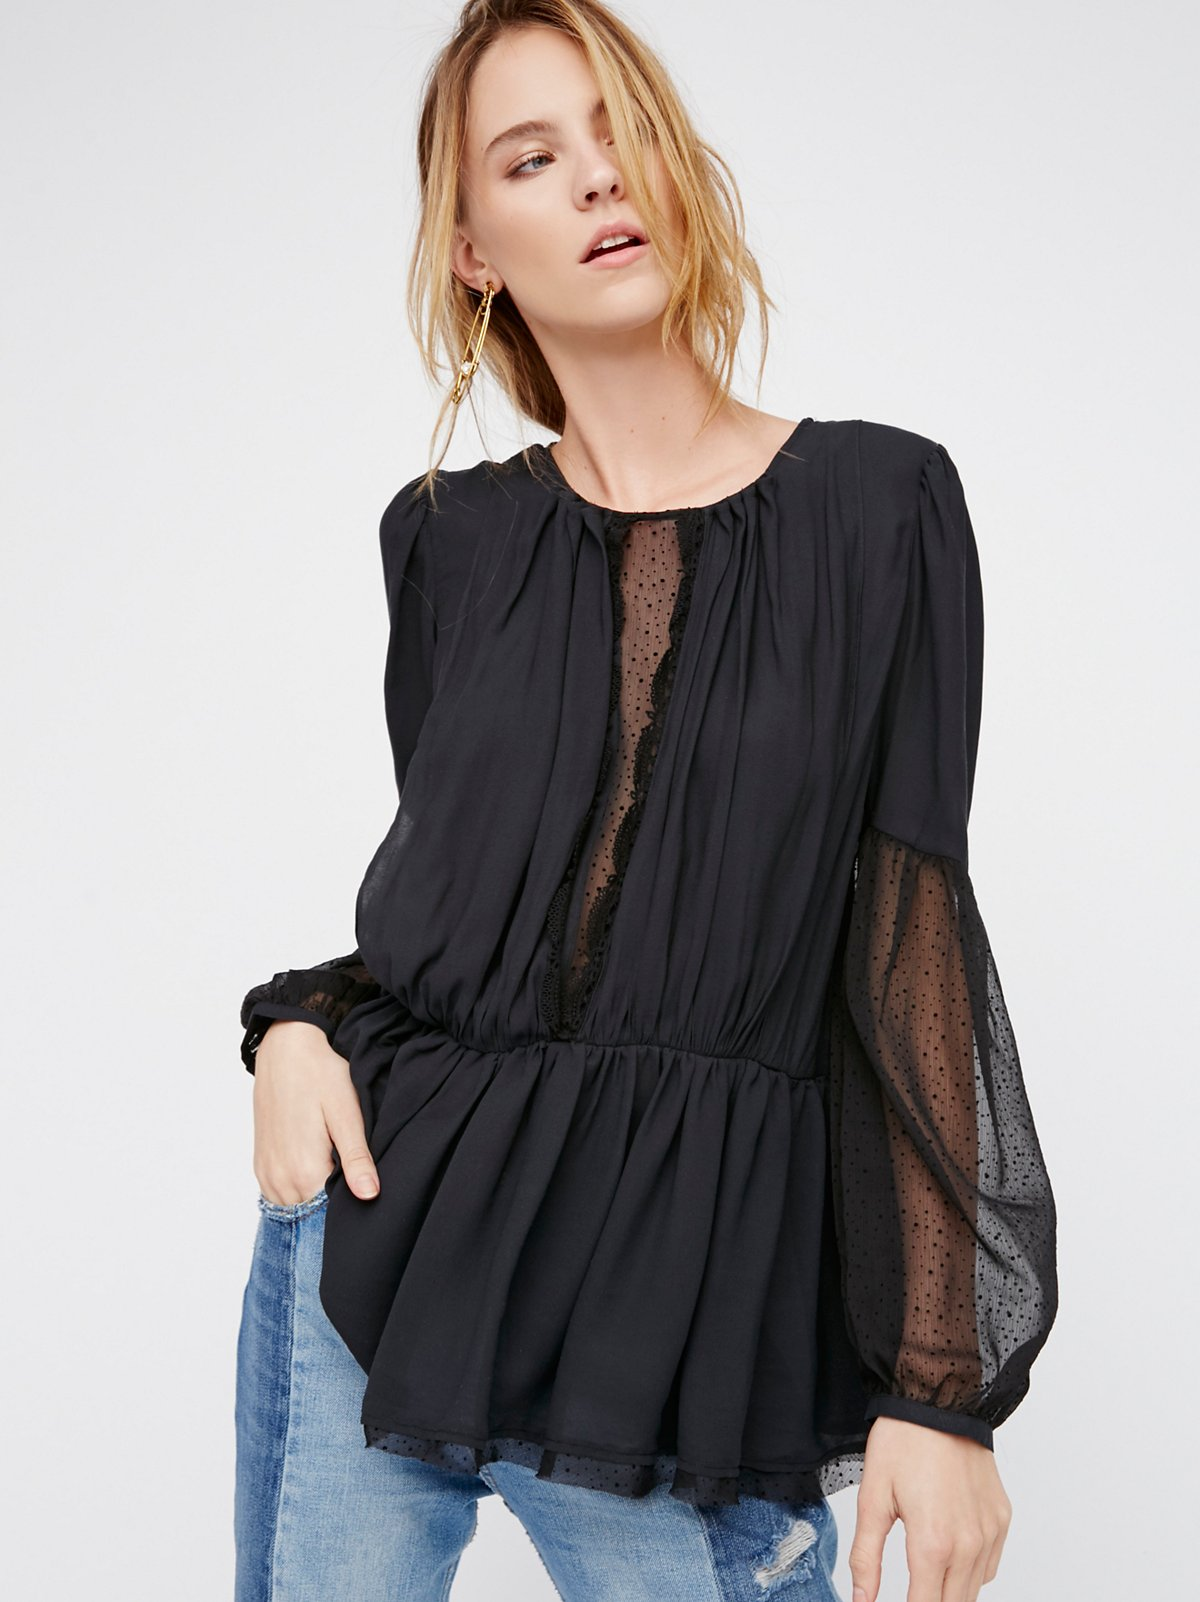 Soul Serene Top at Free People Clothing Boutique